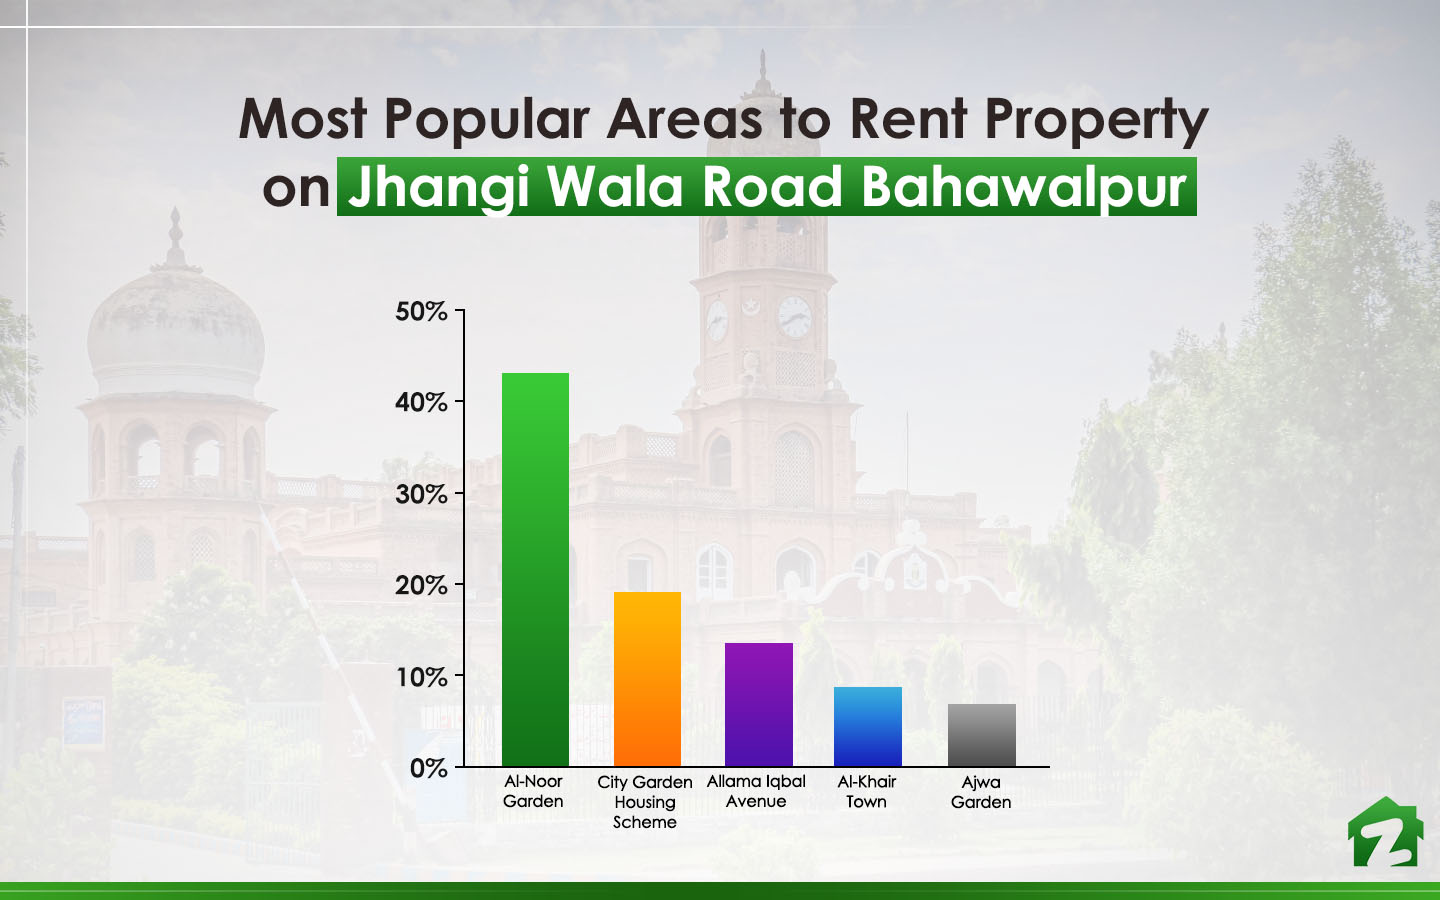 Al-Noor Garden is the most searched area when it comes to rental trends on Jhangi Wala Road